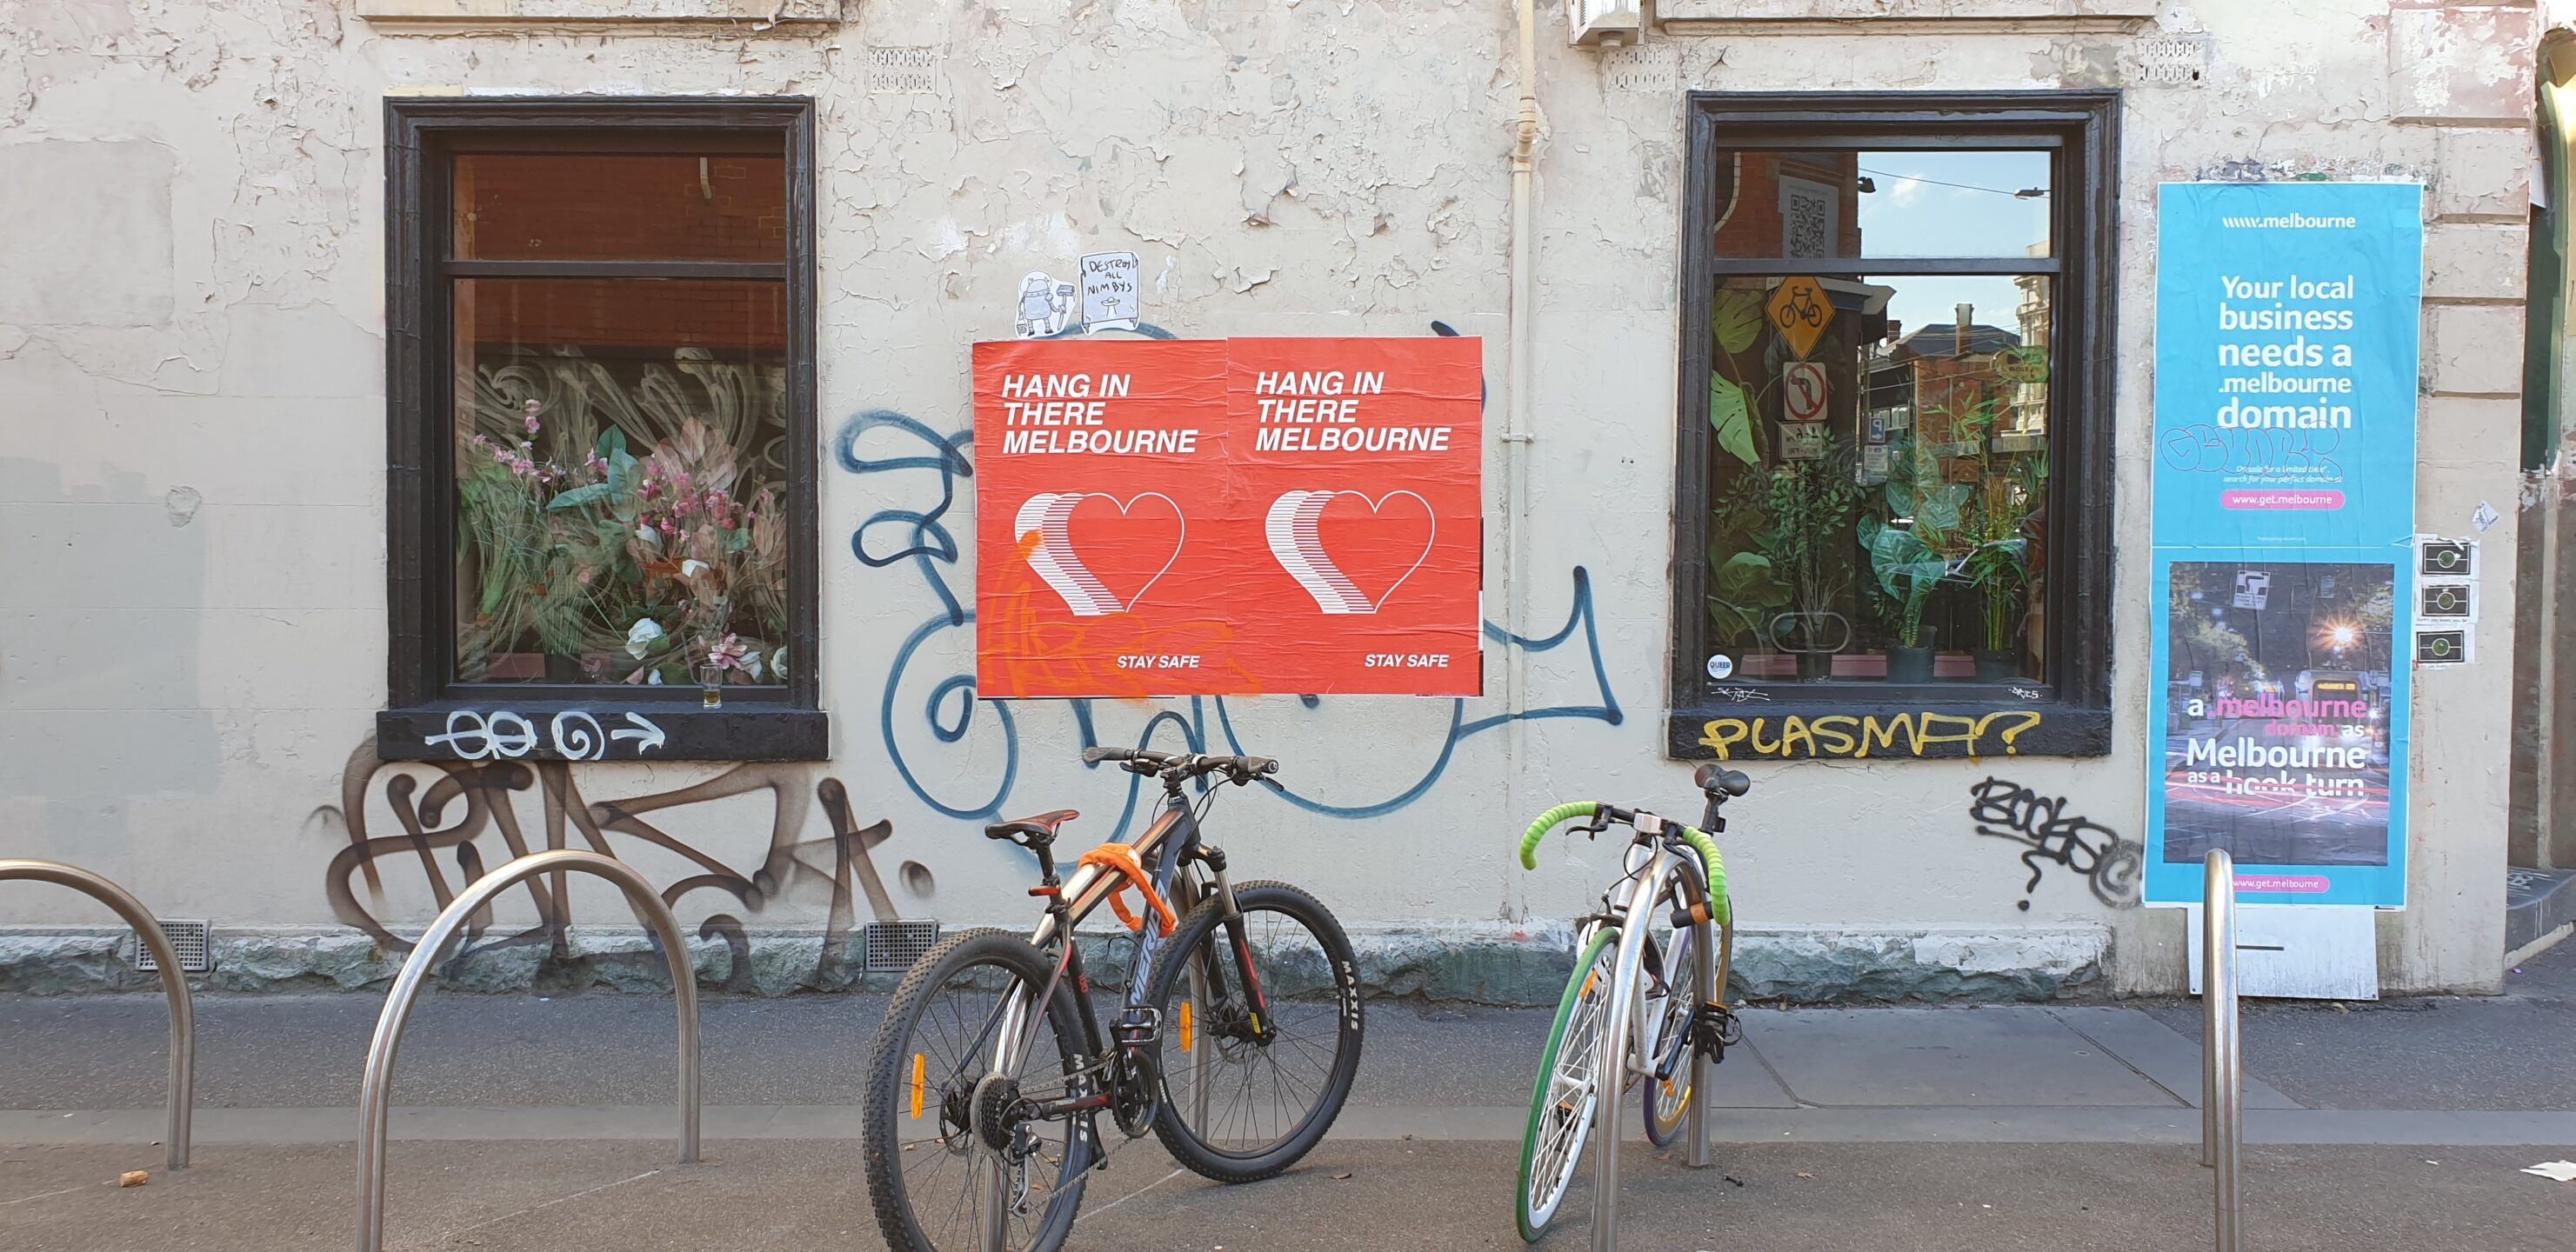 A photo of the side of a Melbourne building with two red posters on it. four bike racks and two bikes are in the foreground.